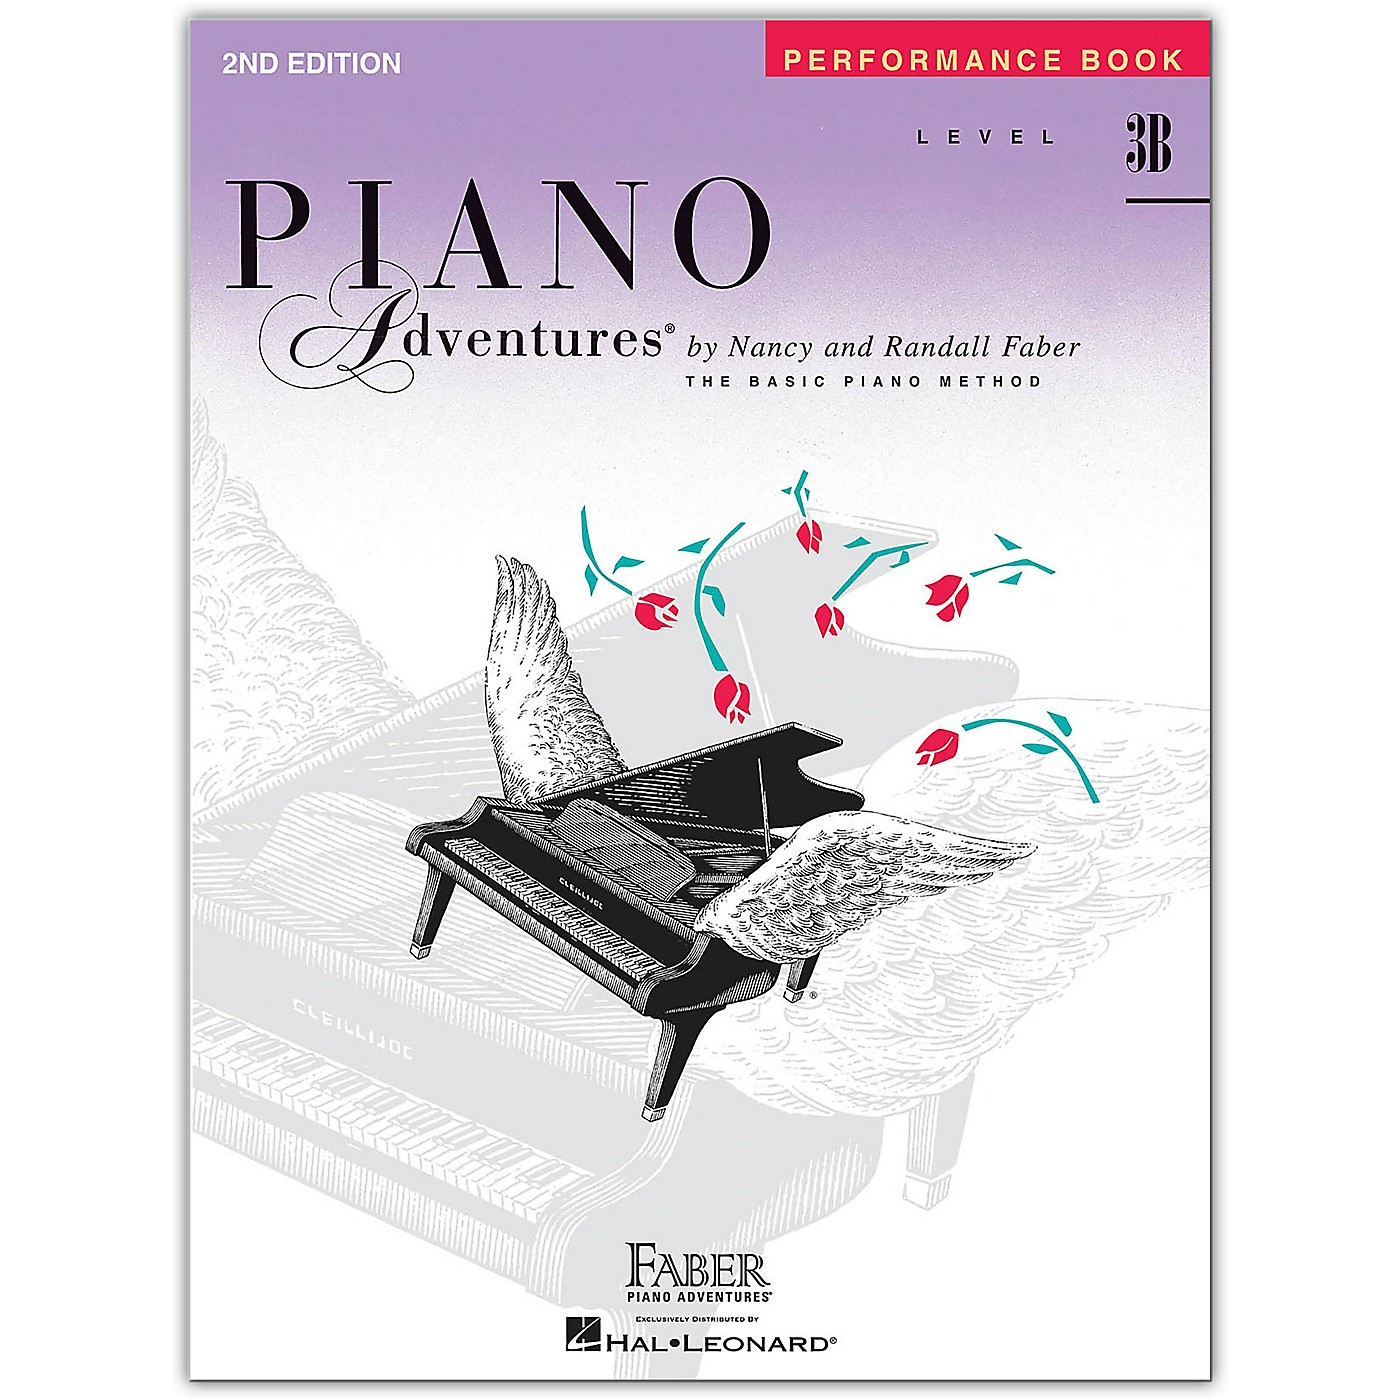 Faber Piano Adventures Piano Adventures Performance Book Level 3B 2nd Edition thumbnail